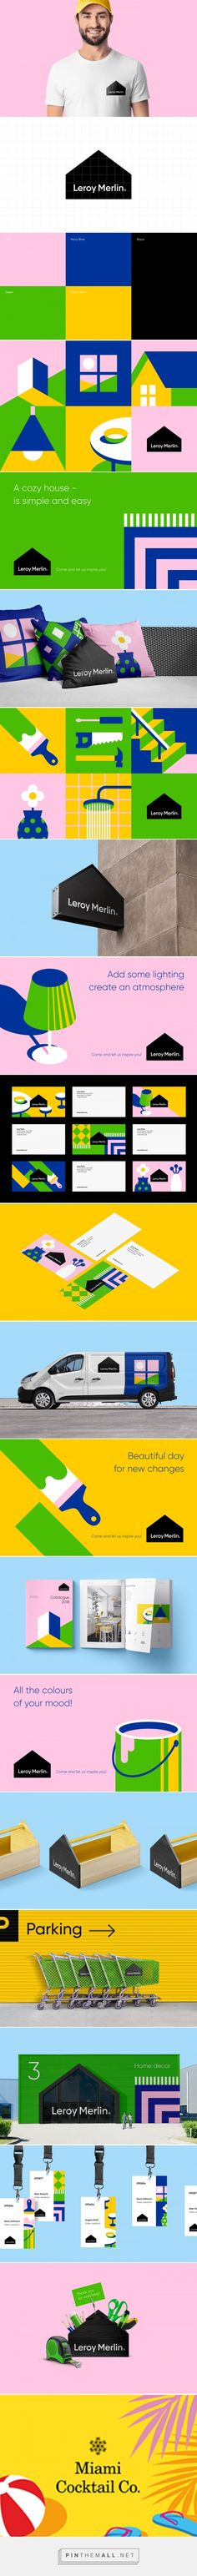 448 Best Branding Images In 2019 Branding Branding Design